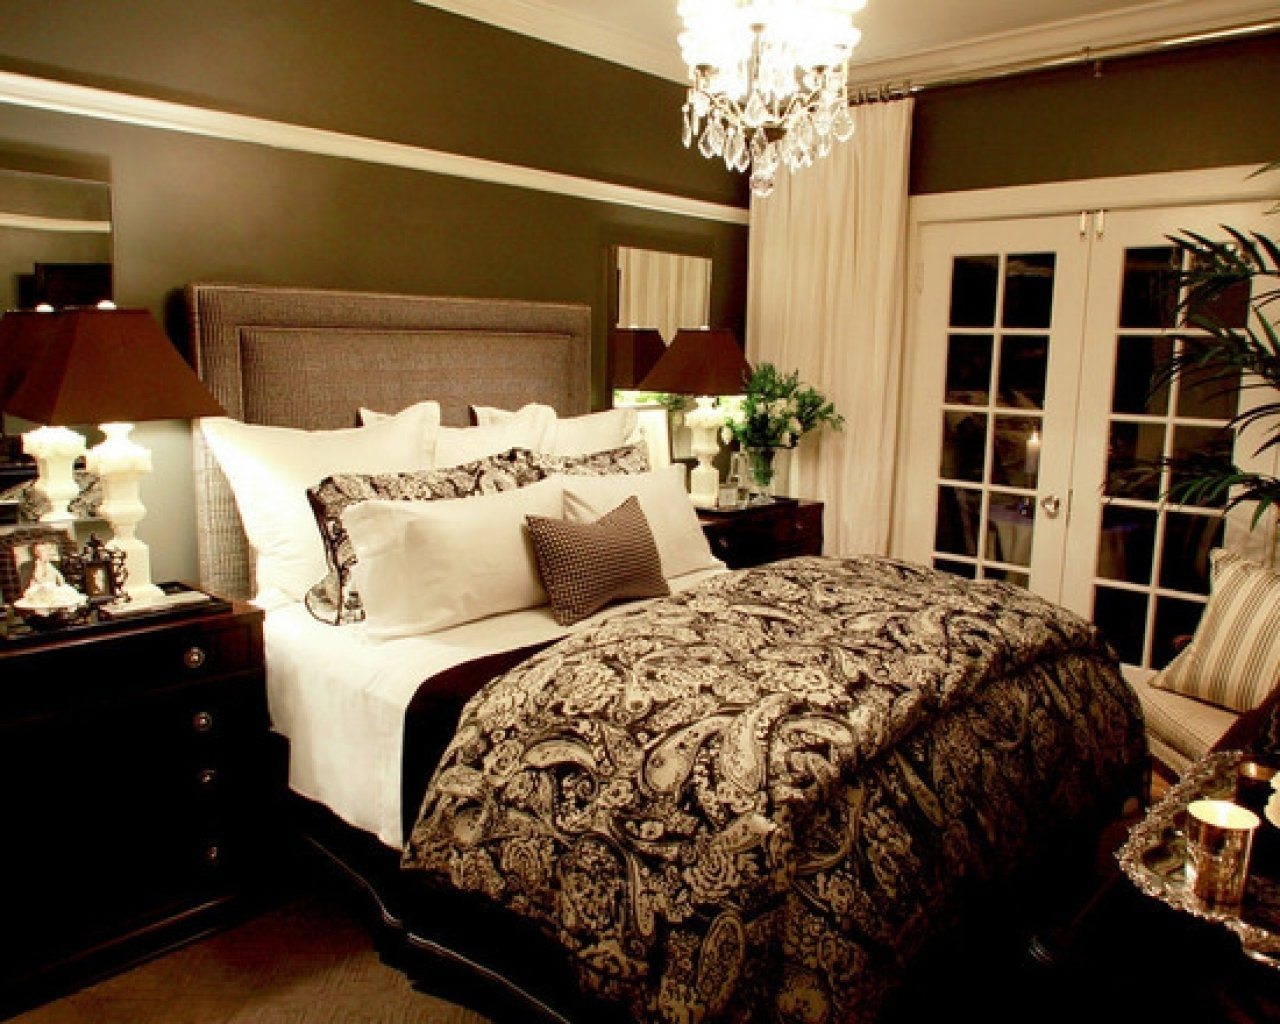 10 Most Recommended Bedroom Decorating Ideas For Couples fabulous bedroom decorating ideas for couples with chandeliers 2020